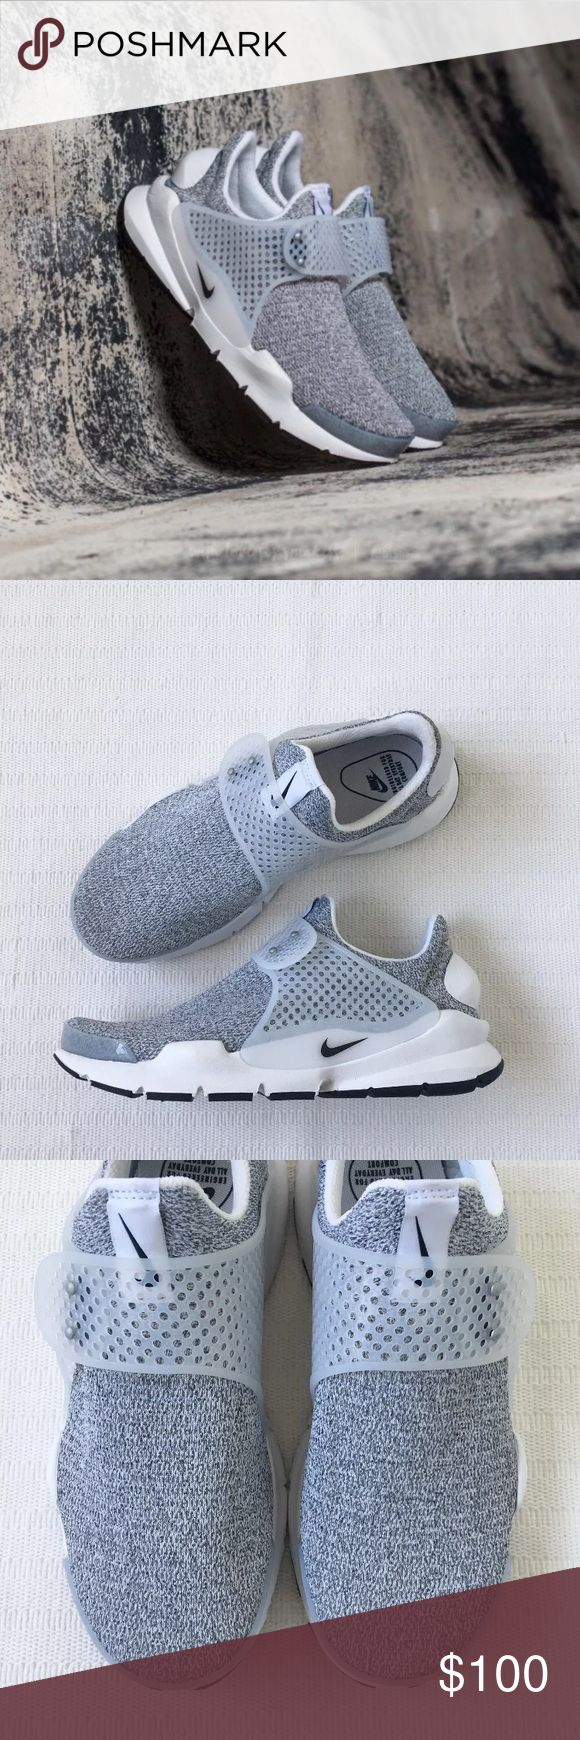 Women's Nike Sock Dart Metro Grey Running Sneakers Women's Nike Sock Dart Metro Grey Running Sneakers takes a minimalist approach for a streamlined look. Knit upper is flexible and breathable. Style/Color: 862412-100  • Women's size 8  • NEW in box (no lid) • No trades •100% authentic Nike Shoes Sneakers